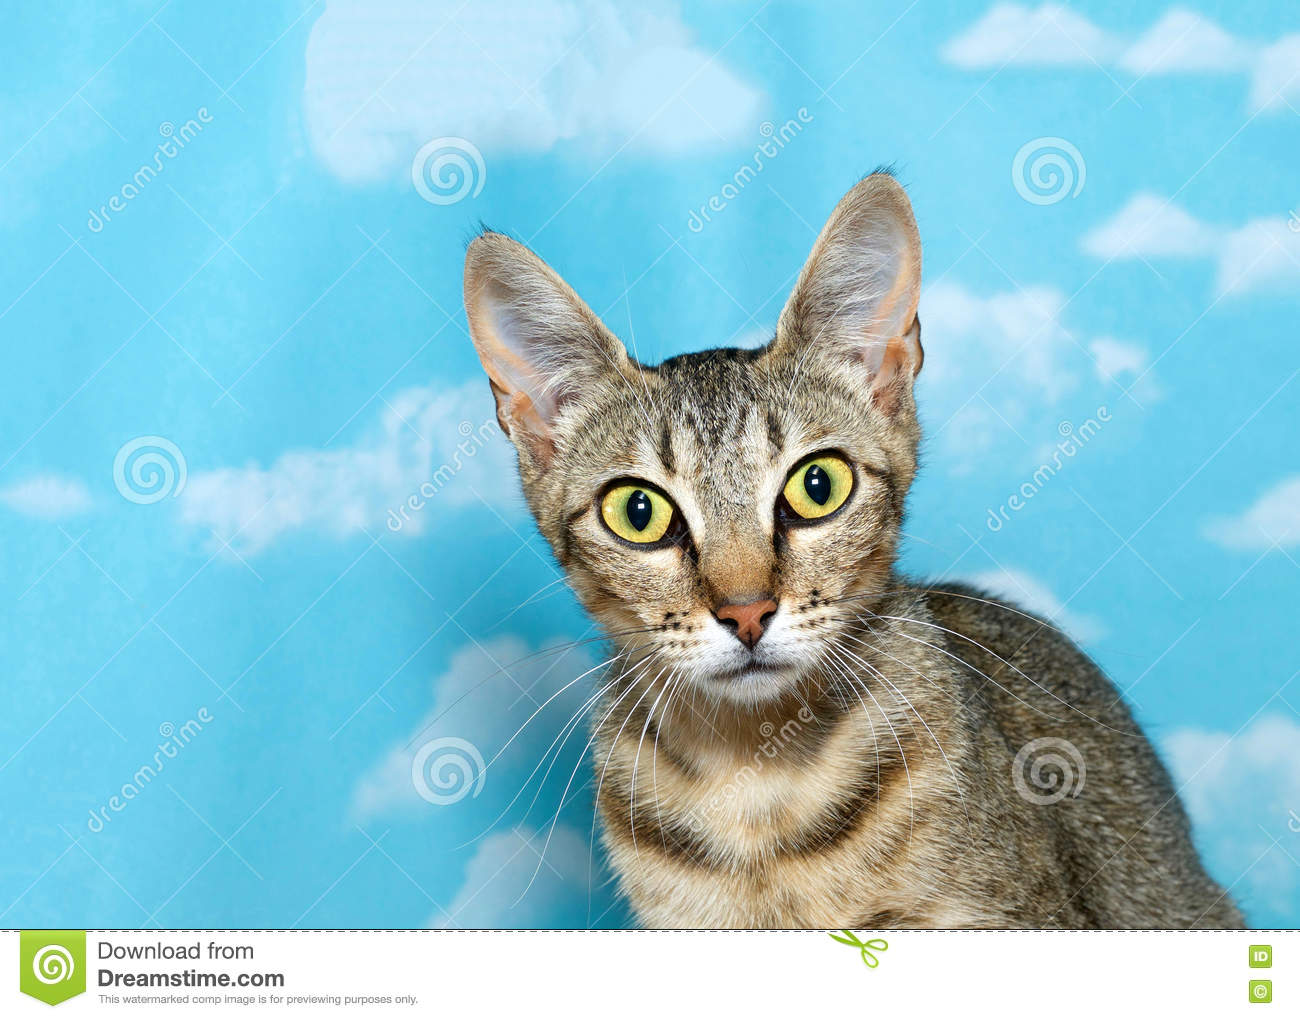 Long eared tabby kitten looking quizzically at viewer